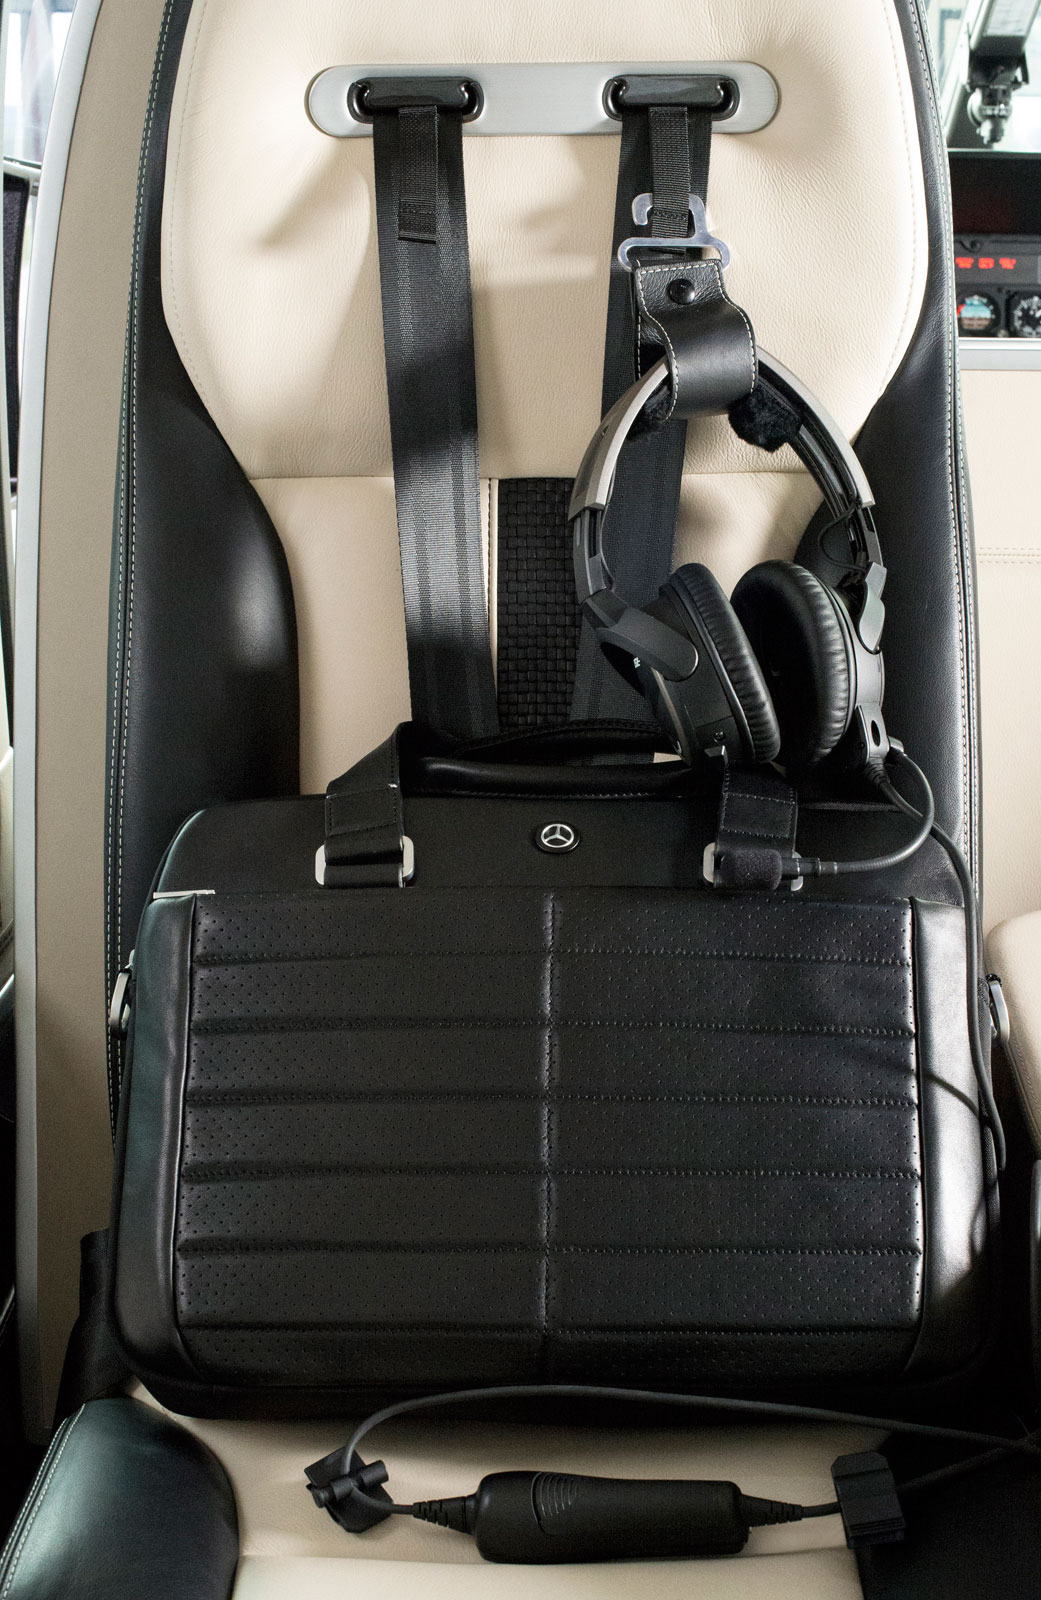 Mercedes-Benz Style Leather and Luggage Collection